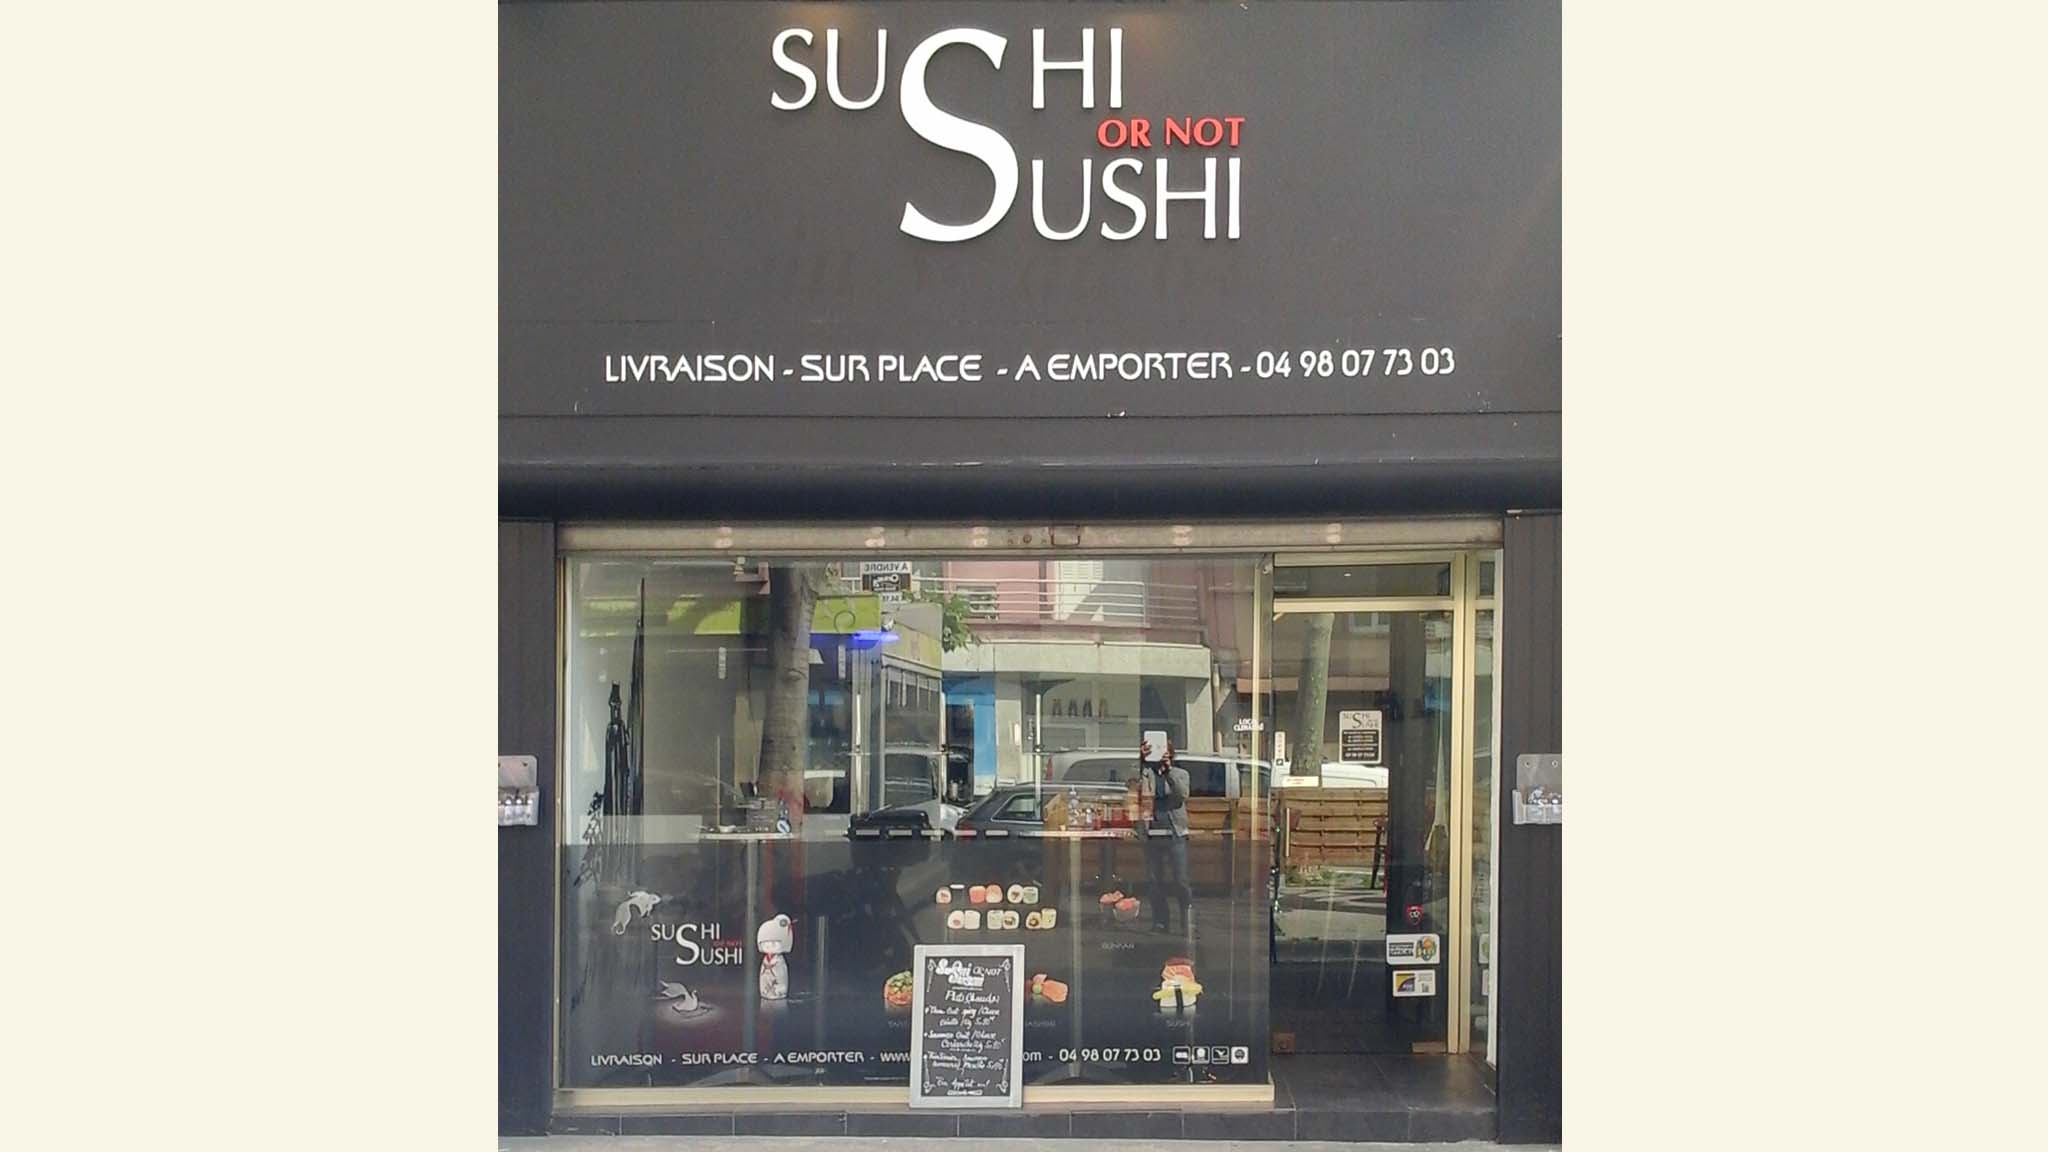 Restaurant Sushi Or Not Sushi